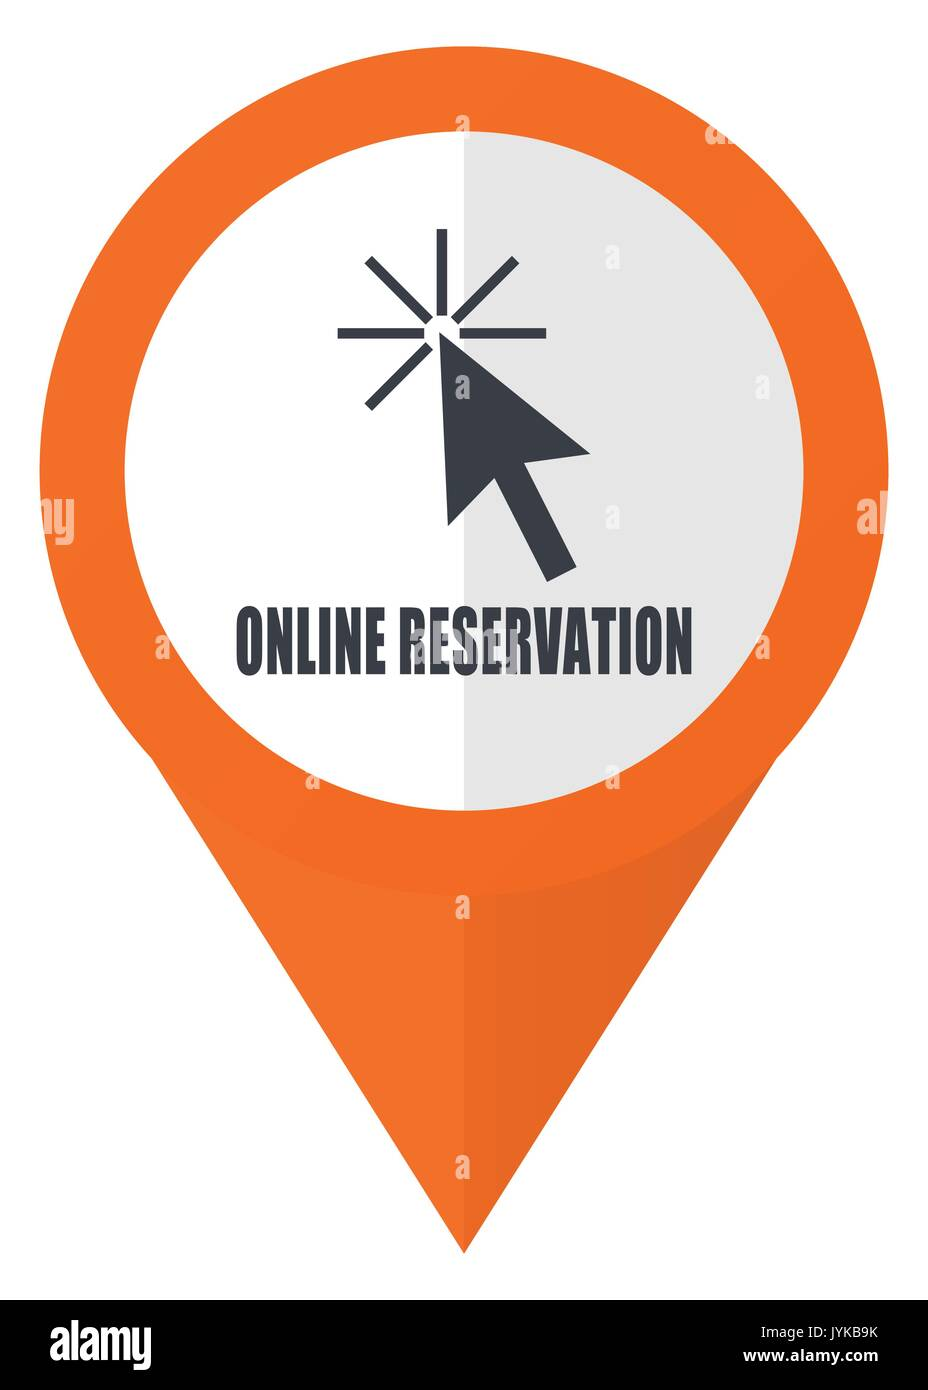 online reservation At the end of the guide, you will have the option to make a reservation online at one of the offices listed below when you make a reservation, you won't need to wait.